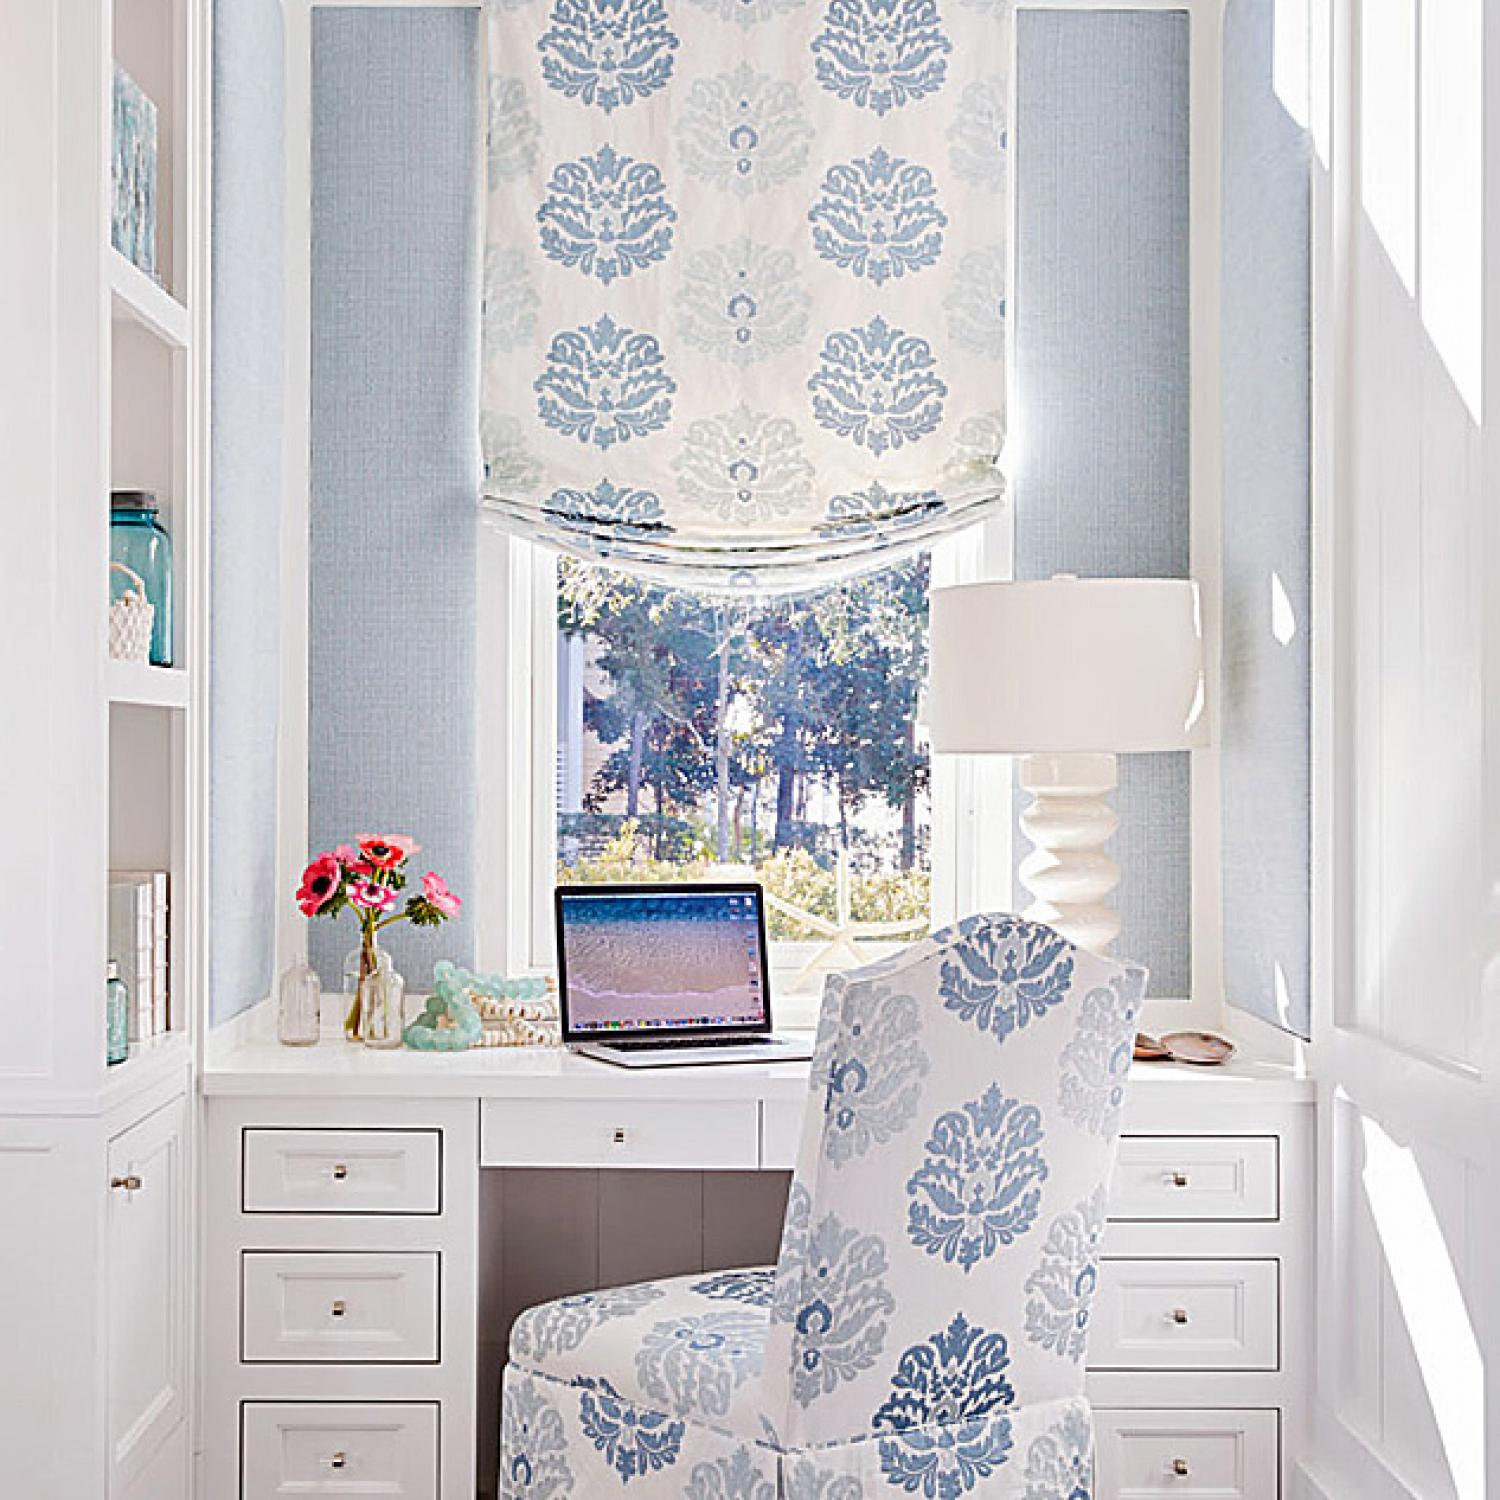 Decorating Ideas: Clever Nooks And Crannies